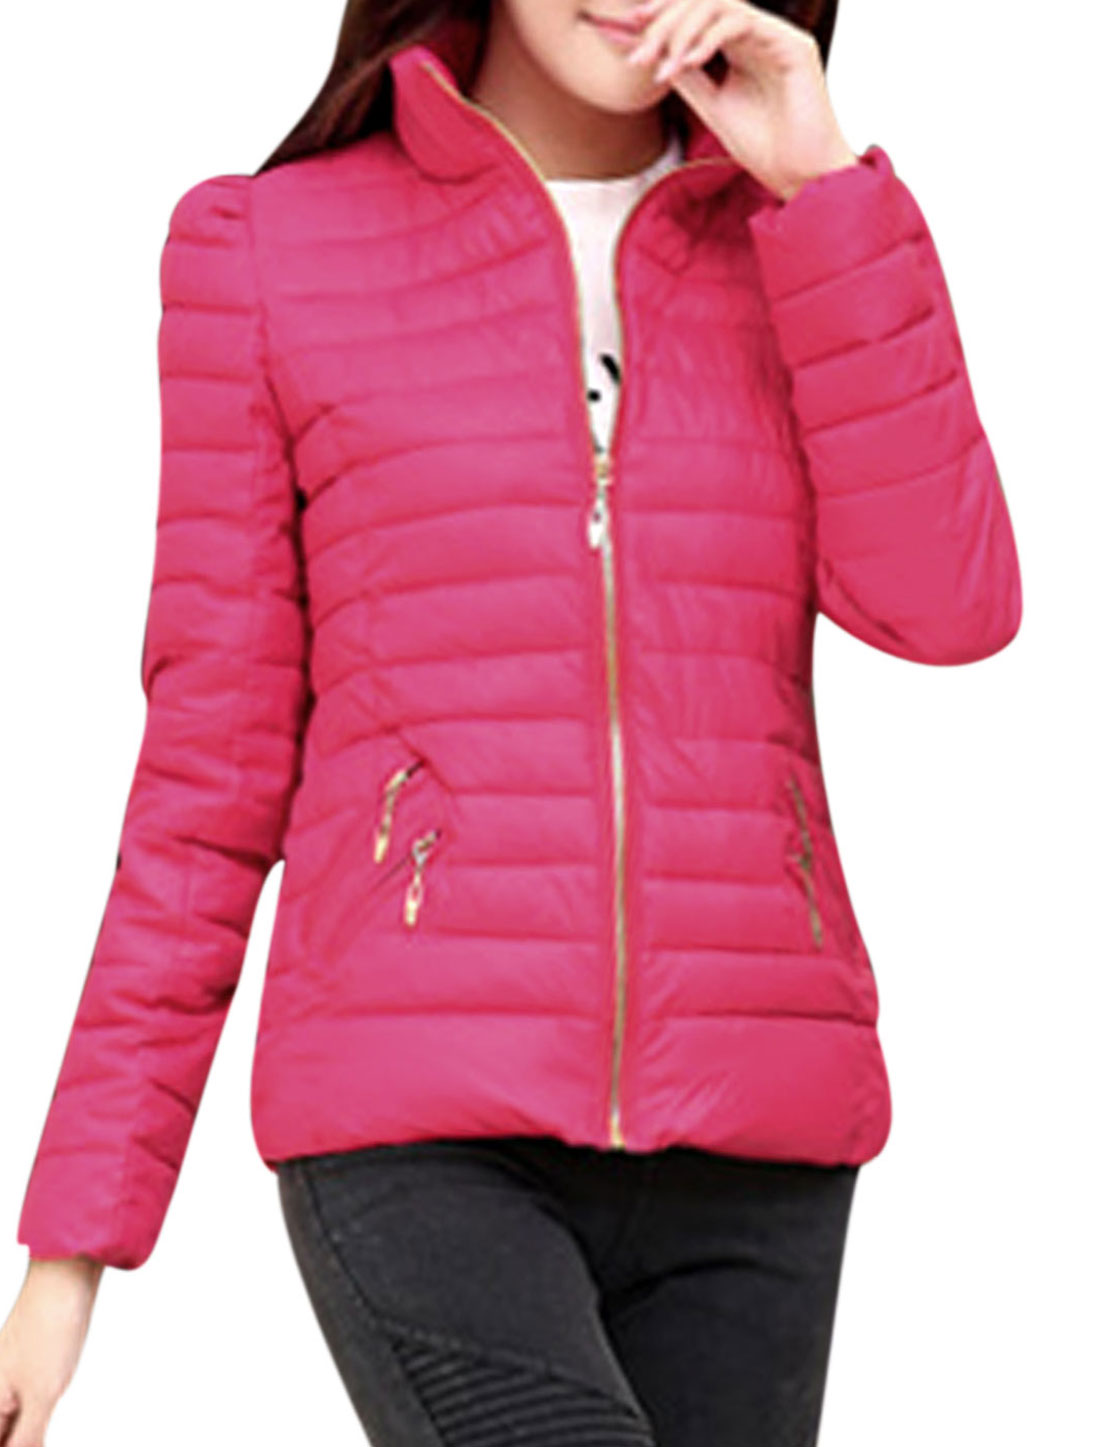 Cozy Fit Fashion Zipper Closed Pockets Front Padded Coat for Lady Fuchsia M